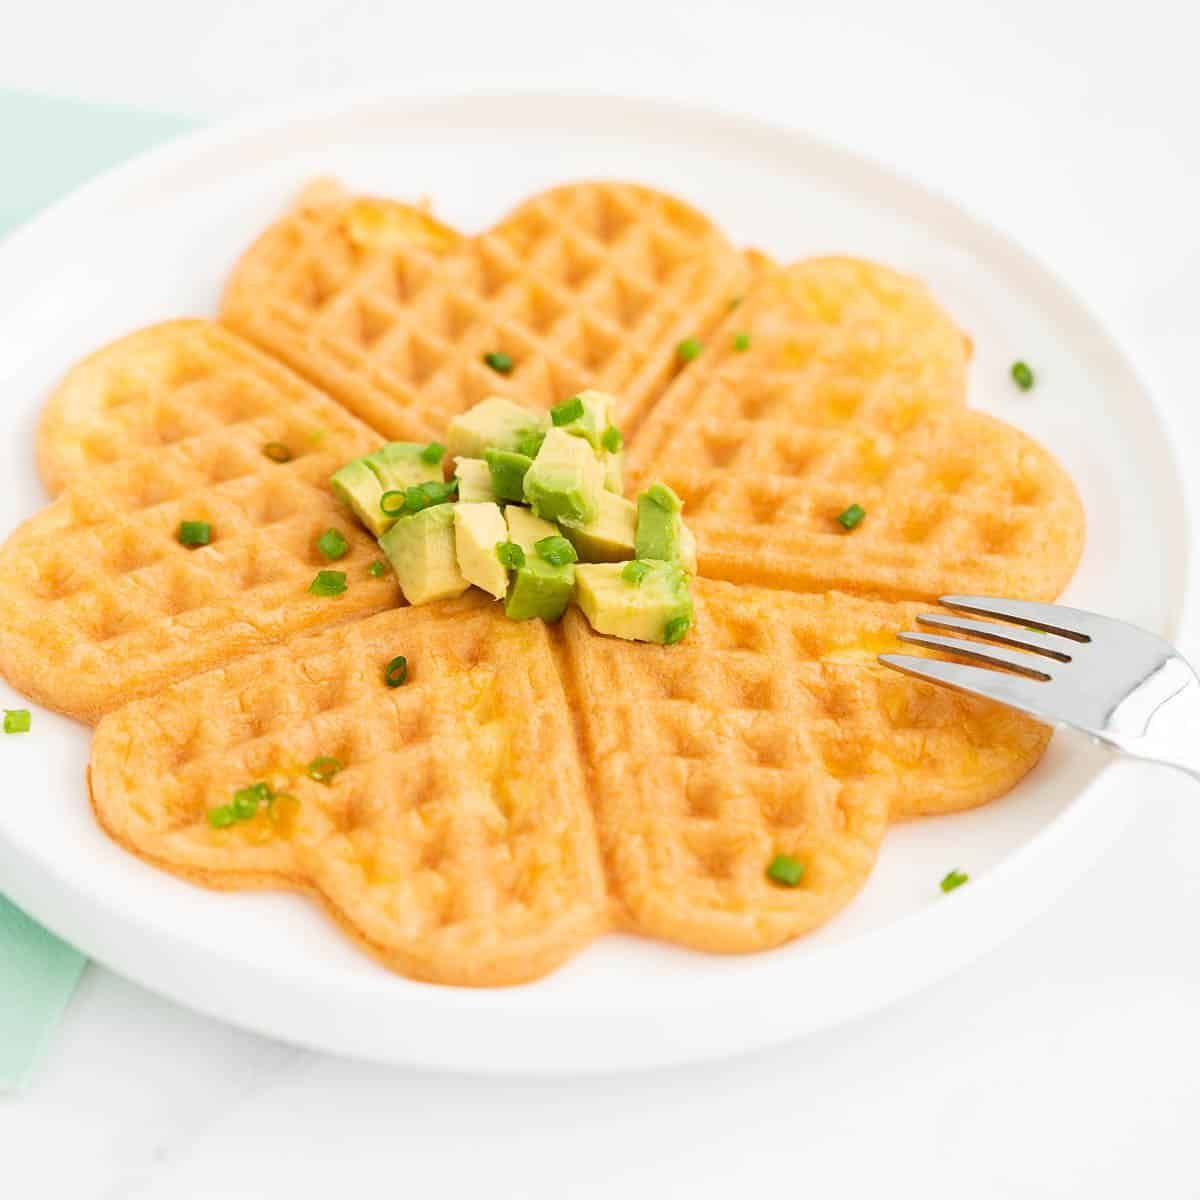 An egg waffle on a white plate garnished with small cubes of avocado and chives.